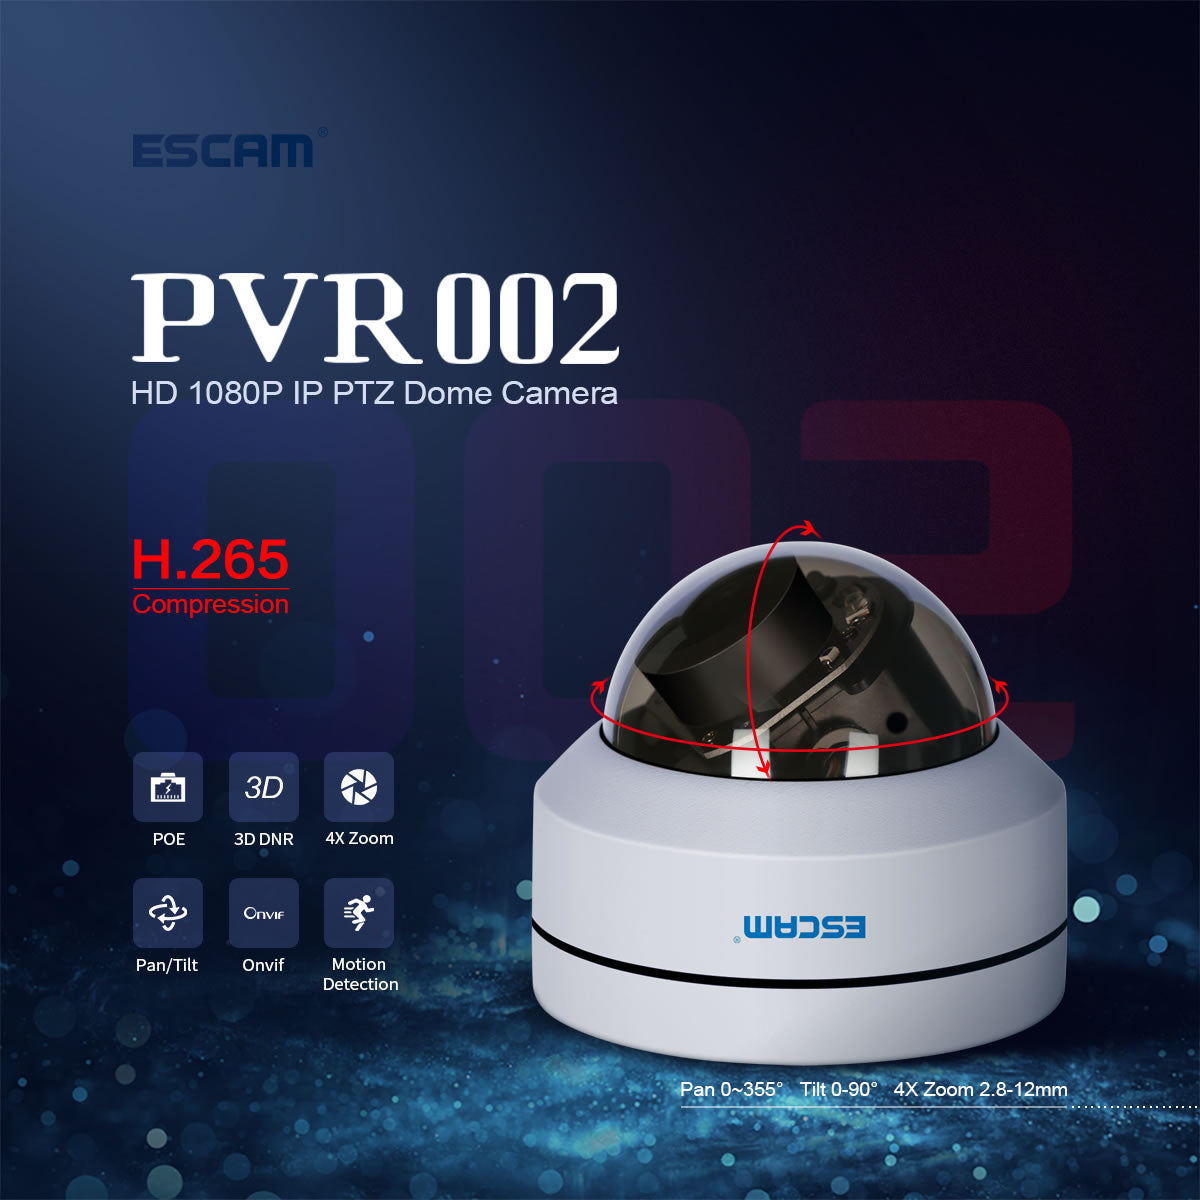 ESCAM PVR002 IP Camera